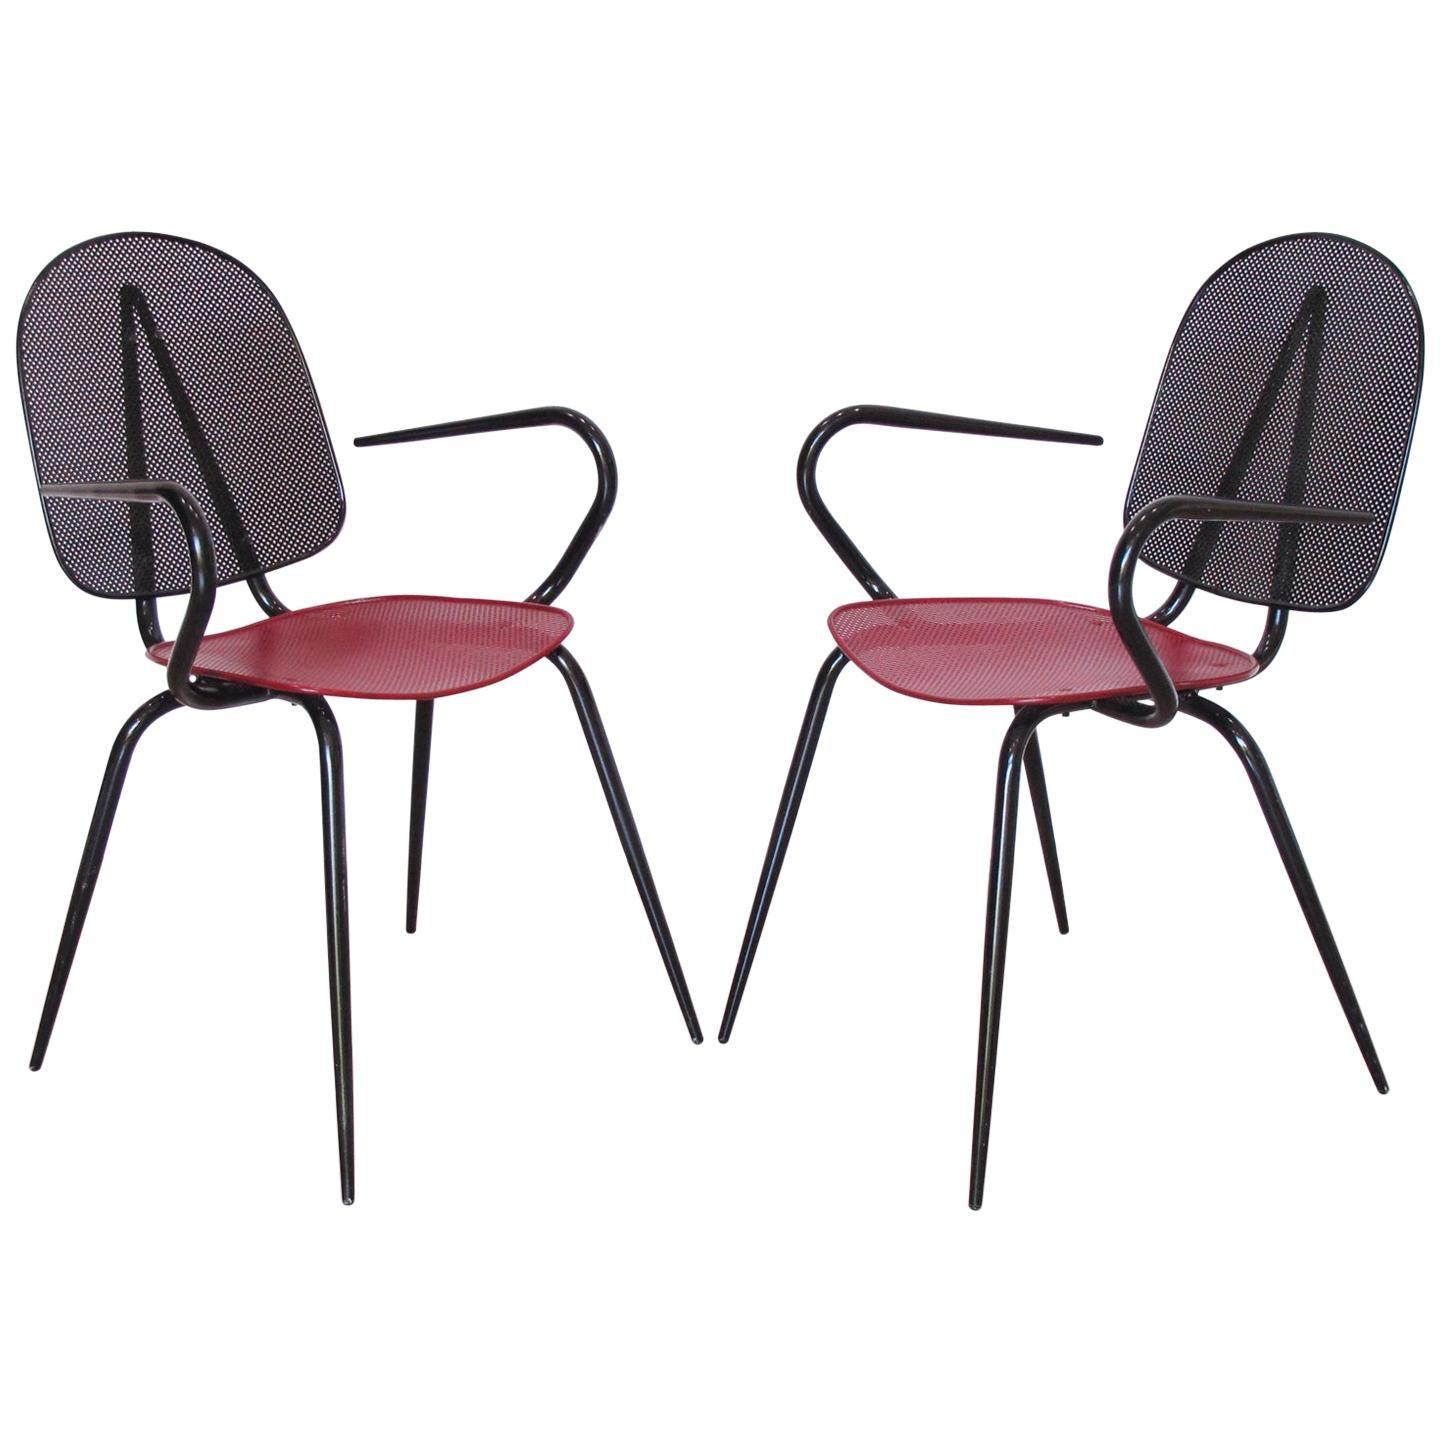 metal armchair most comfortable portable chair manner of mathieu mategot black and red perforated a pair for sale